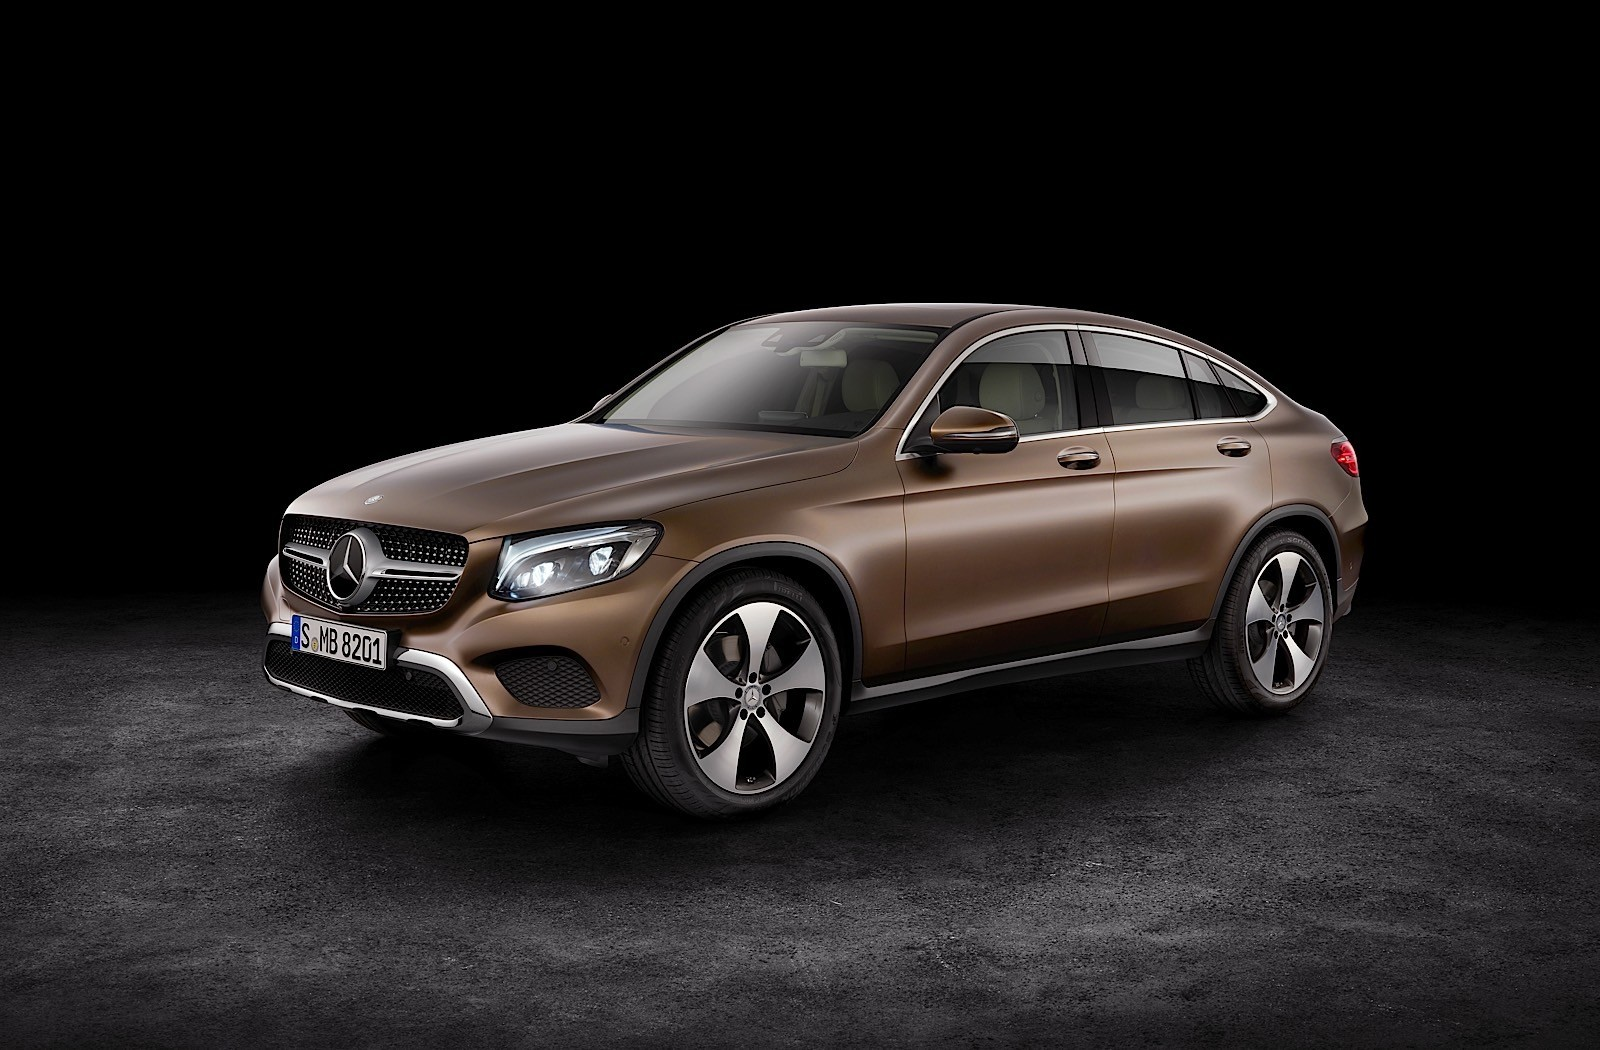 2017 mercedes benz glc coupe is out for bmw x4 blood in. Black Bedroom Furniture Sets. Home Design Ideas